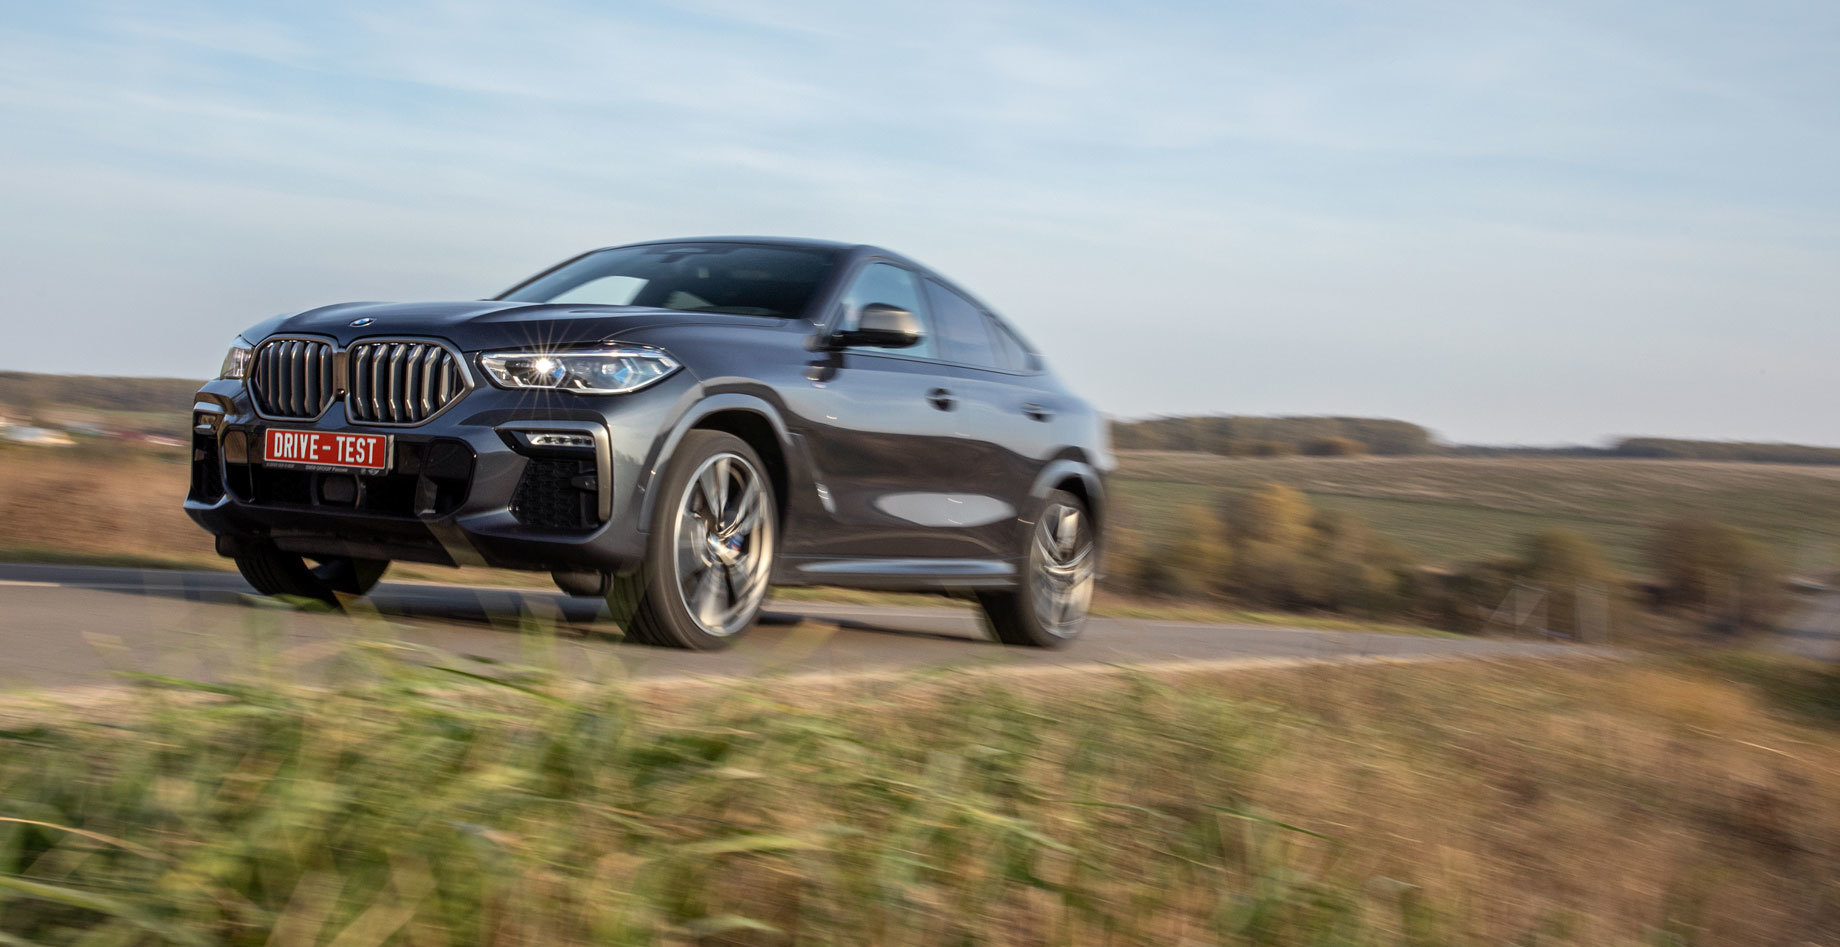 Проводим тест BMW X6 M50d и Mercedes GLE 400 d Coupe